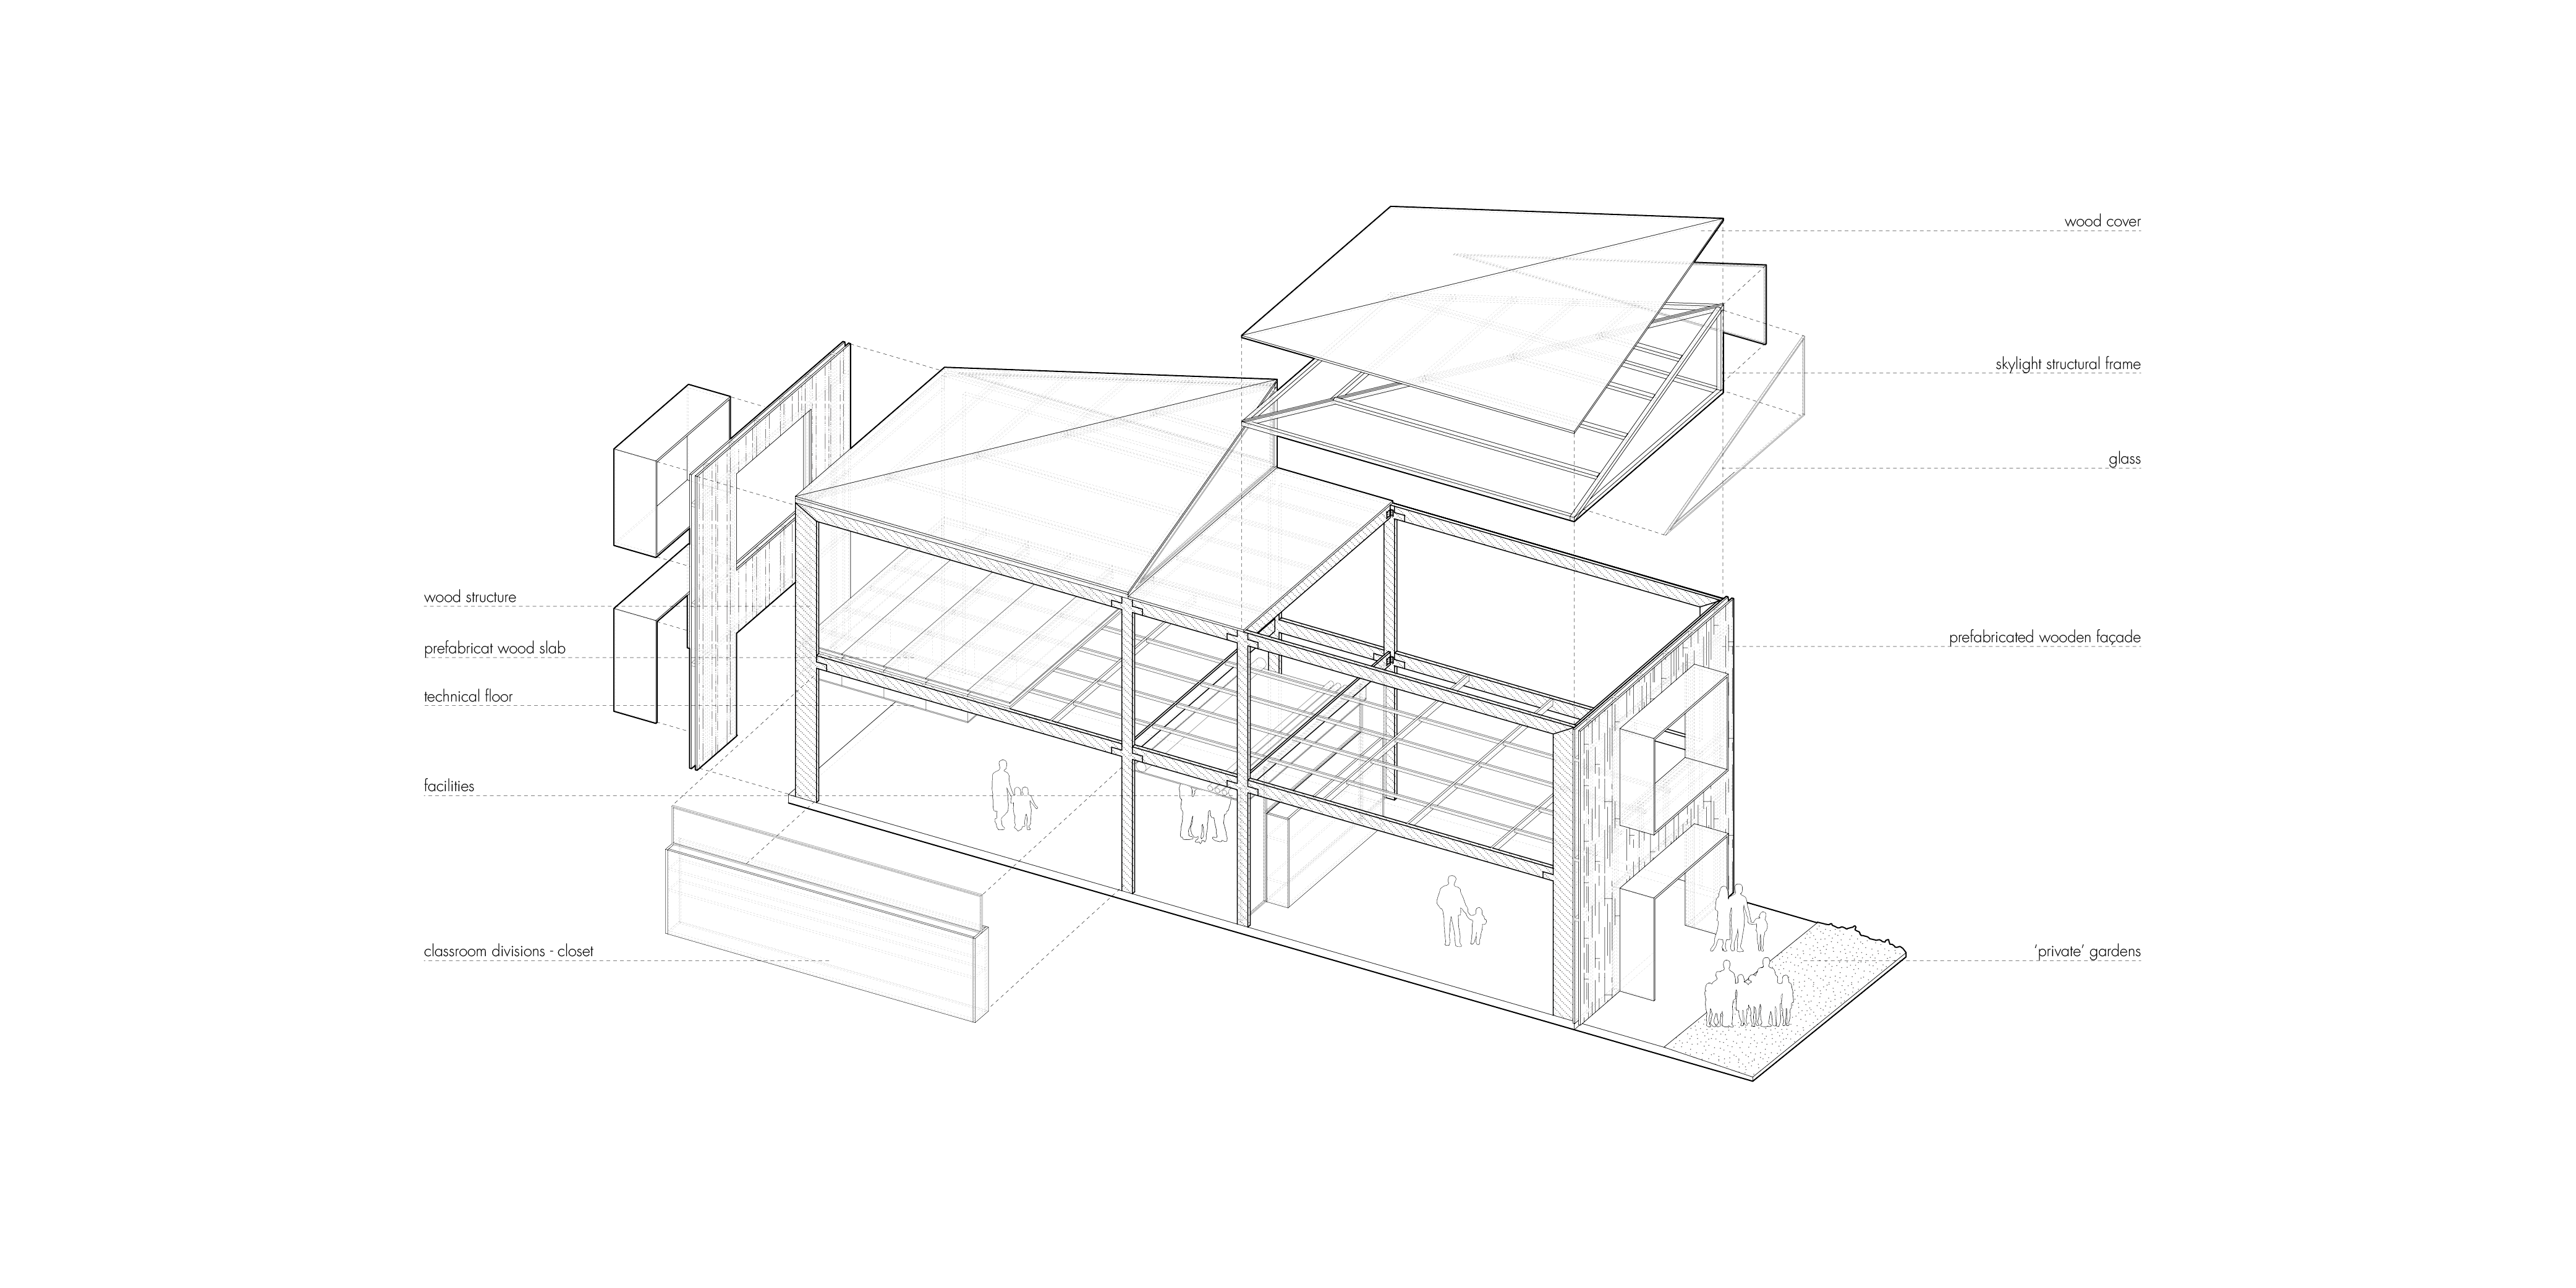 Construction drawing of a school module